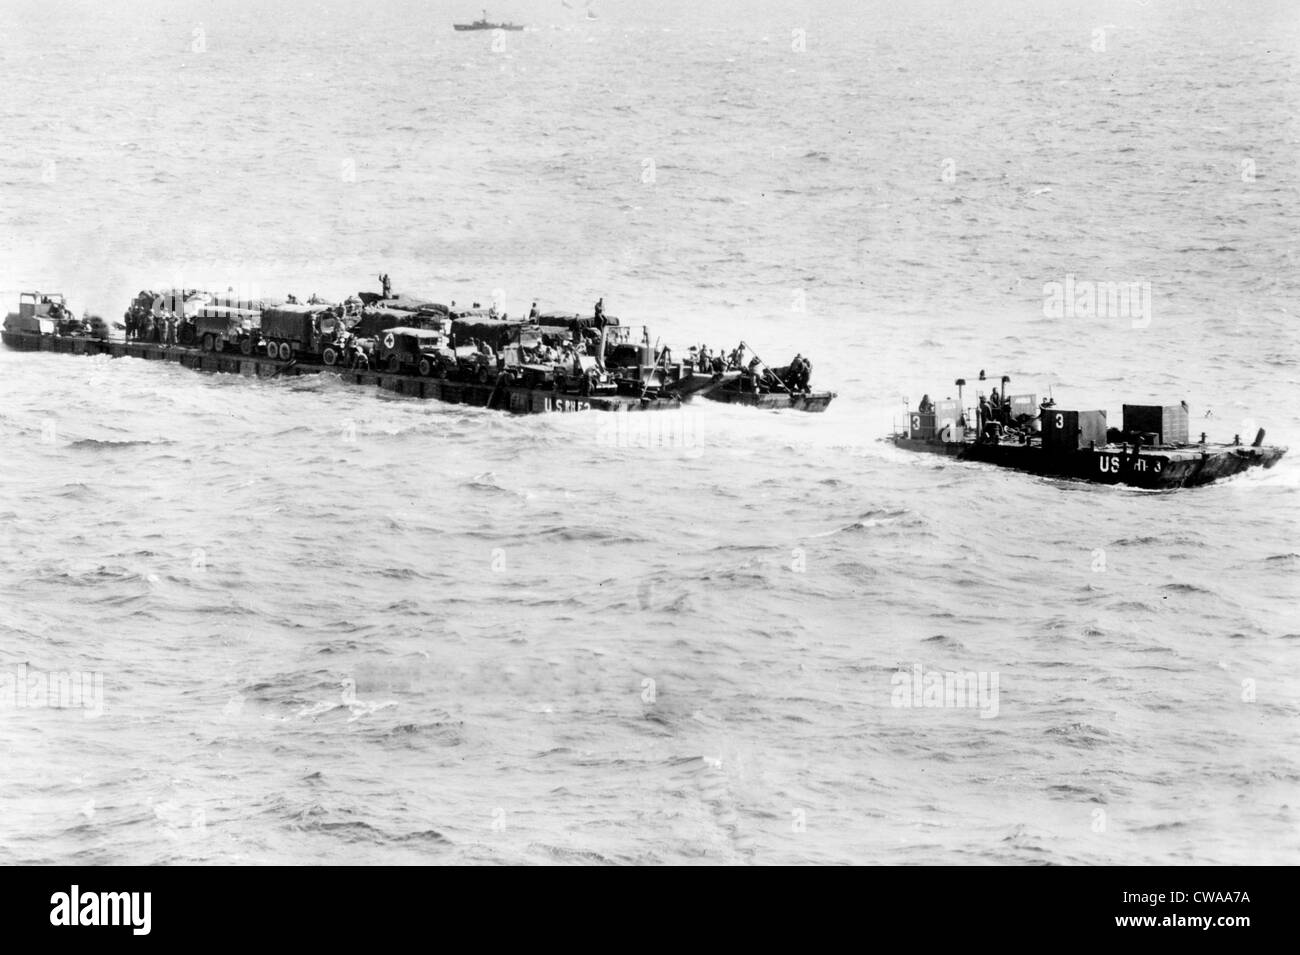 WORLD WAR II, in France, ships have difficulty crossing the English channel on invasion day.. Courtesy: CSU Archives - Stock Image